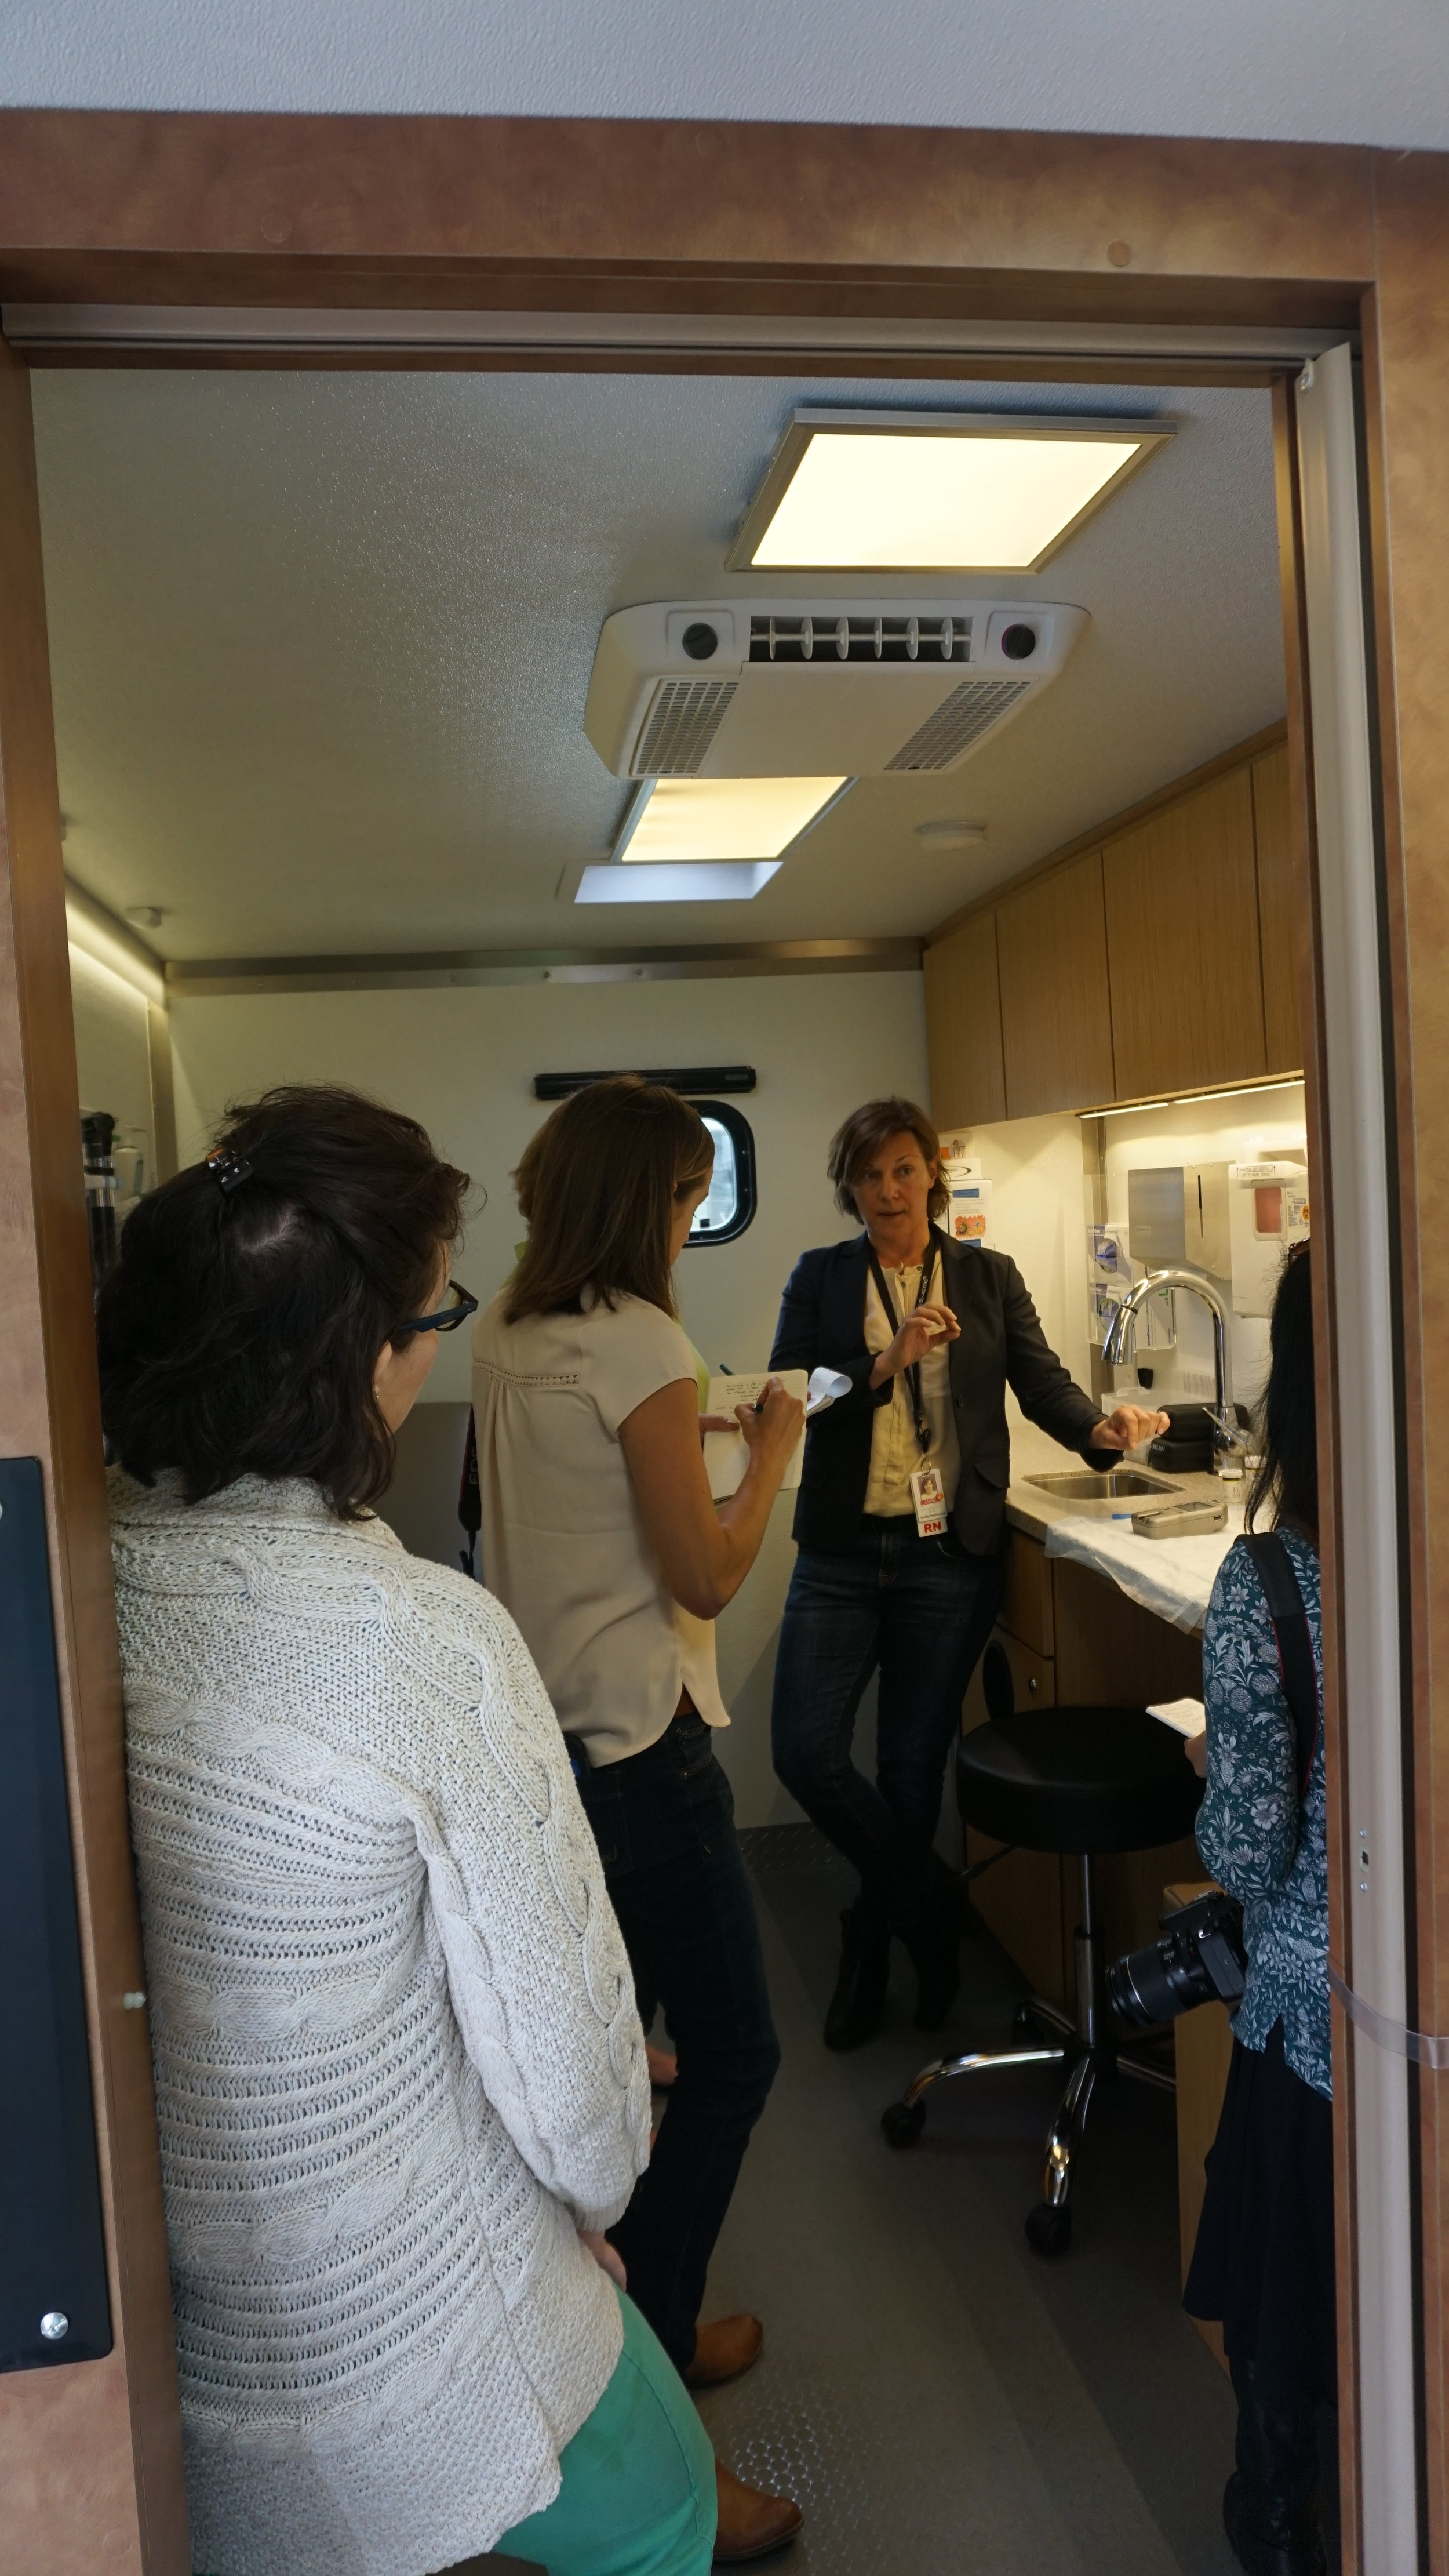 From a mobile medical unit, a variety of preventative care tests and procedures can be conducted. Viki Eierdam